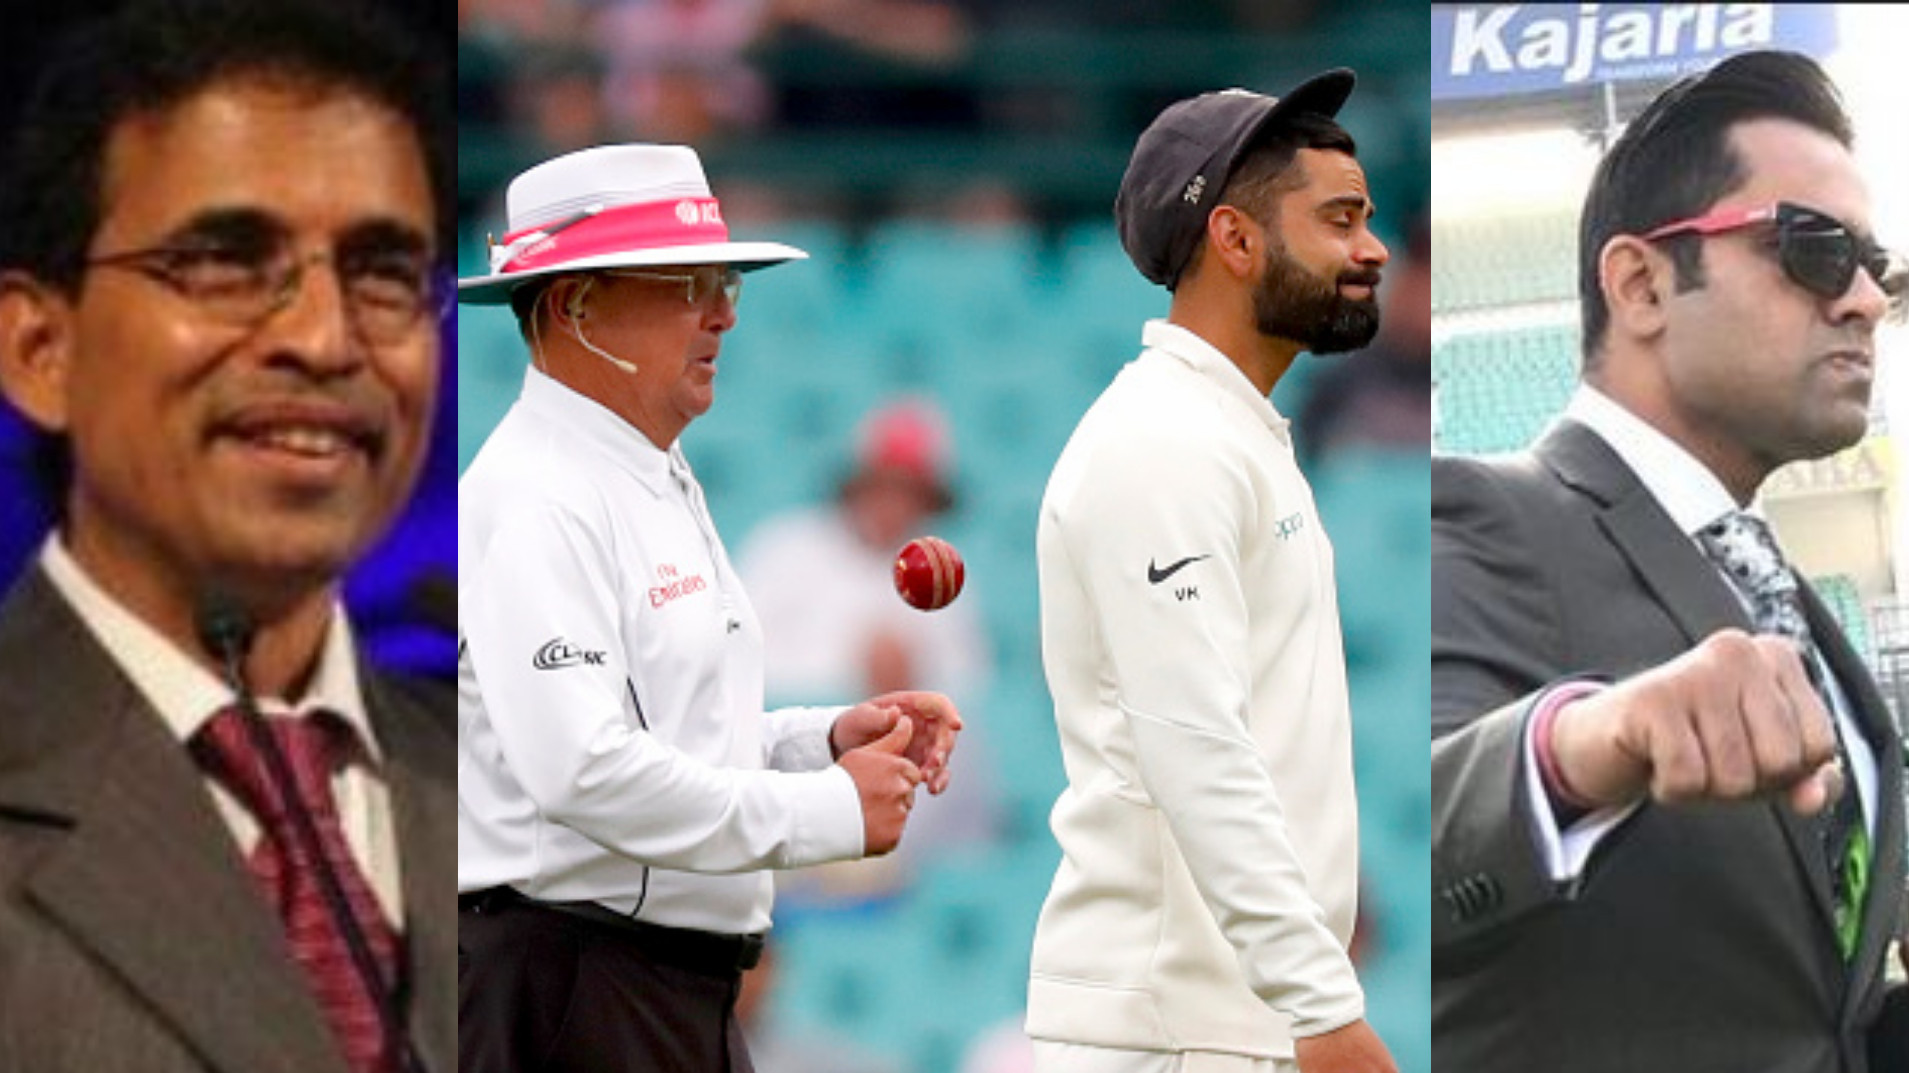 AUS v IND 2018-19: Cricket fraternity tear into umpires for stopping play due to 'bad light'